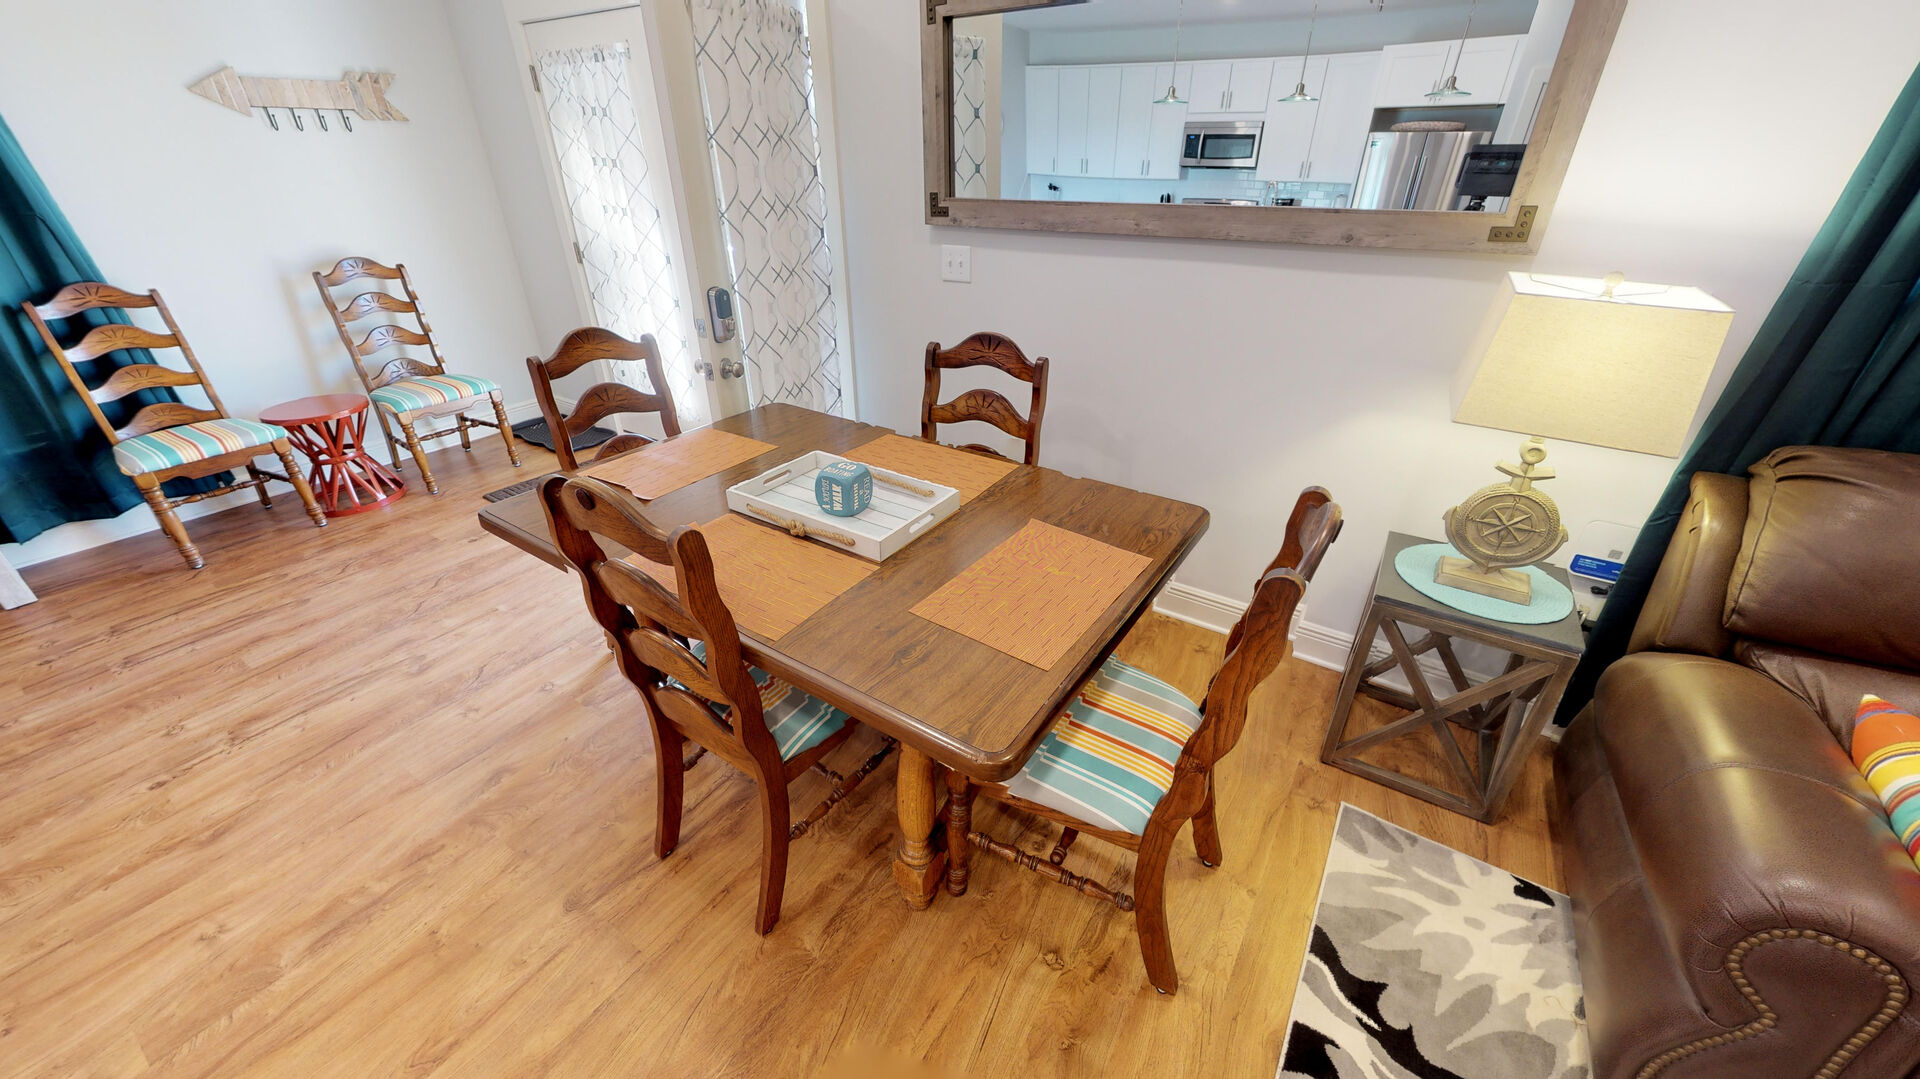 Dining Table, Chairs, Side Table, Table Lamp, Mirror, and Sofa.